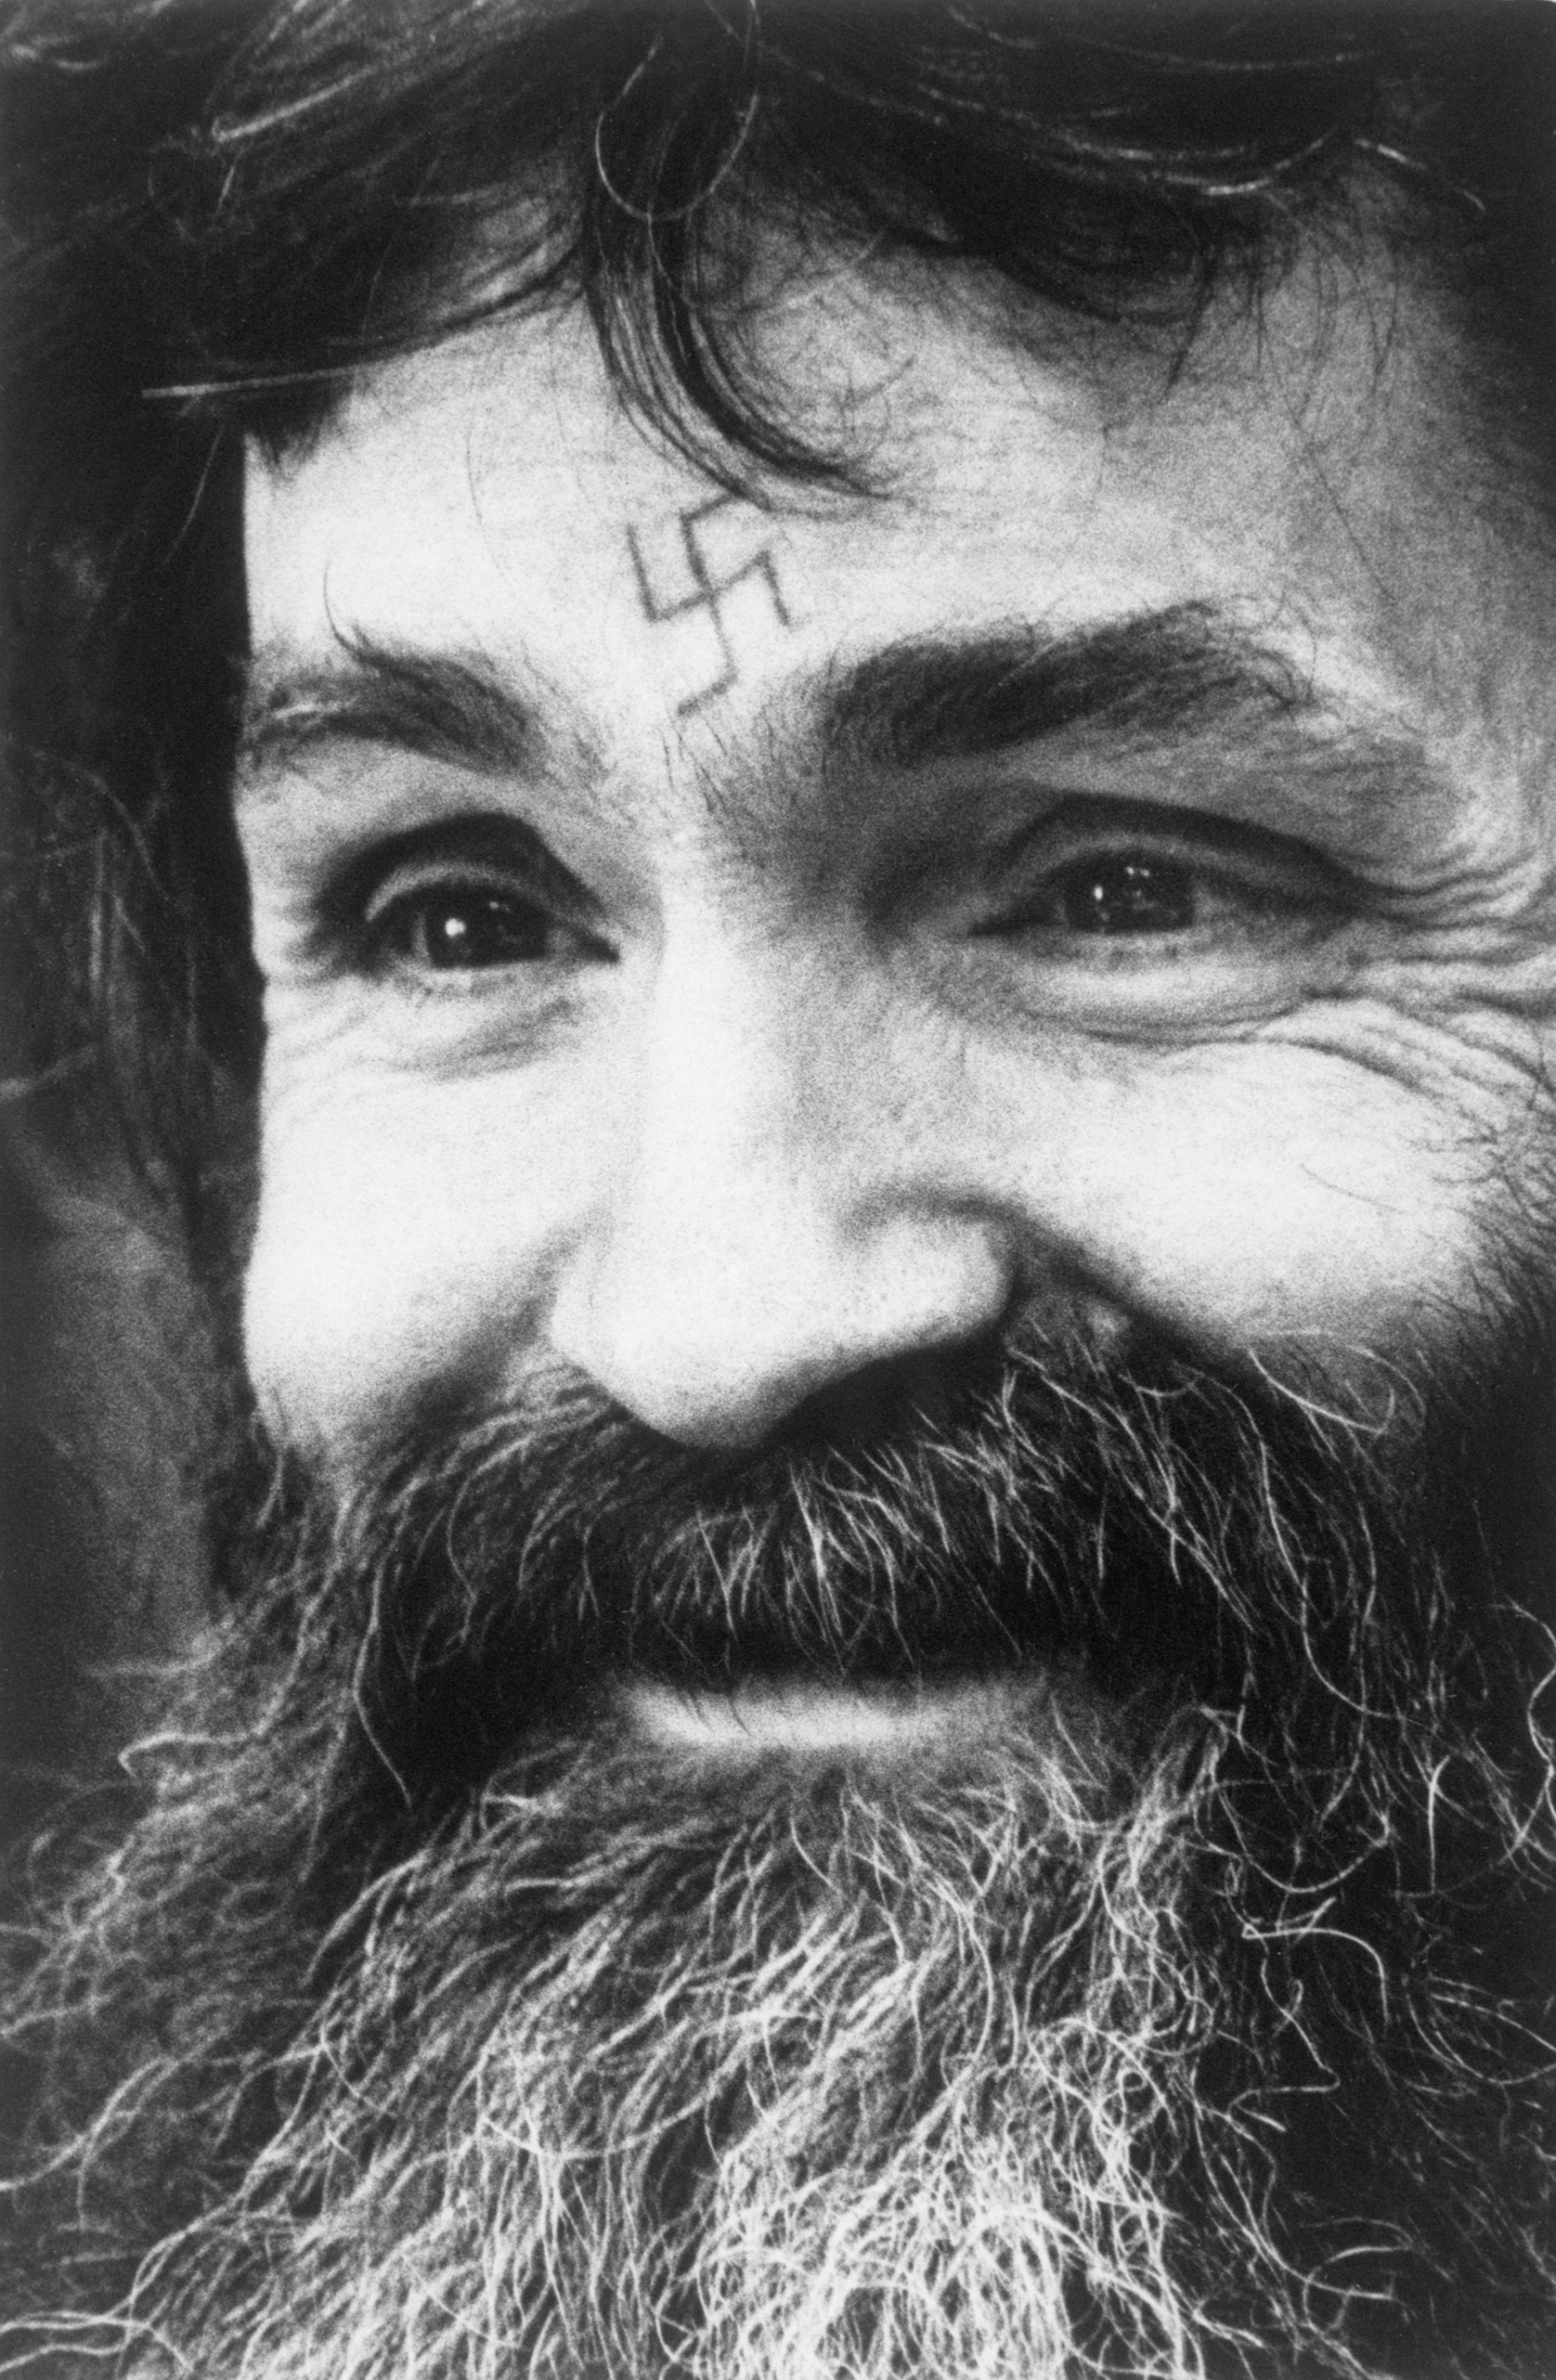 Charles Manson with Swastika Tattoo on Forehead